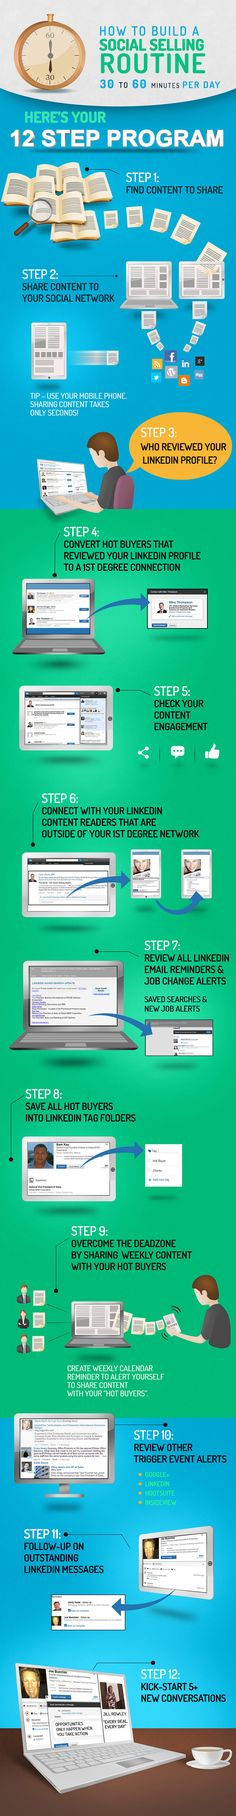 How To Craft A Social Selling Routine In 30 Minutes (Infographic)